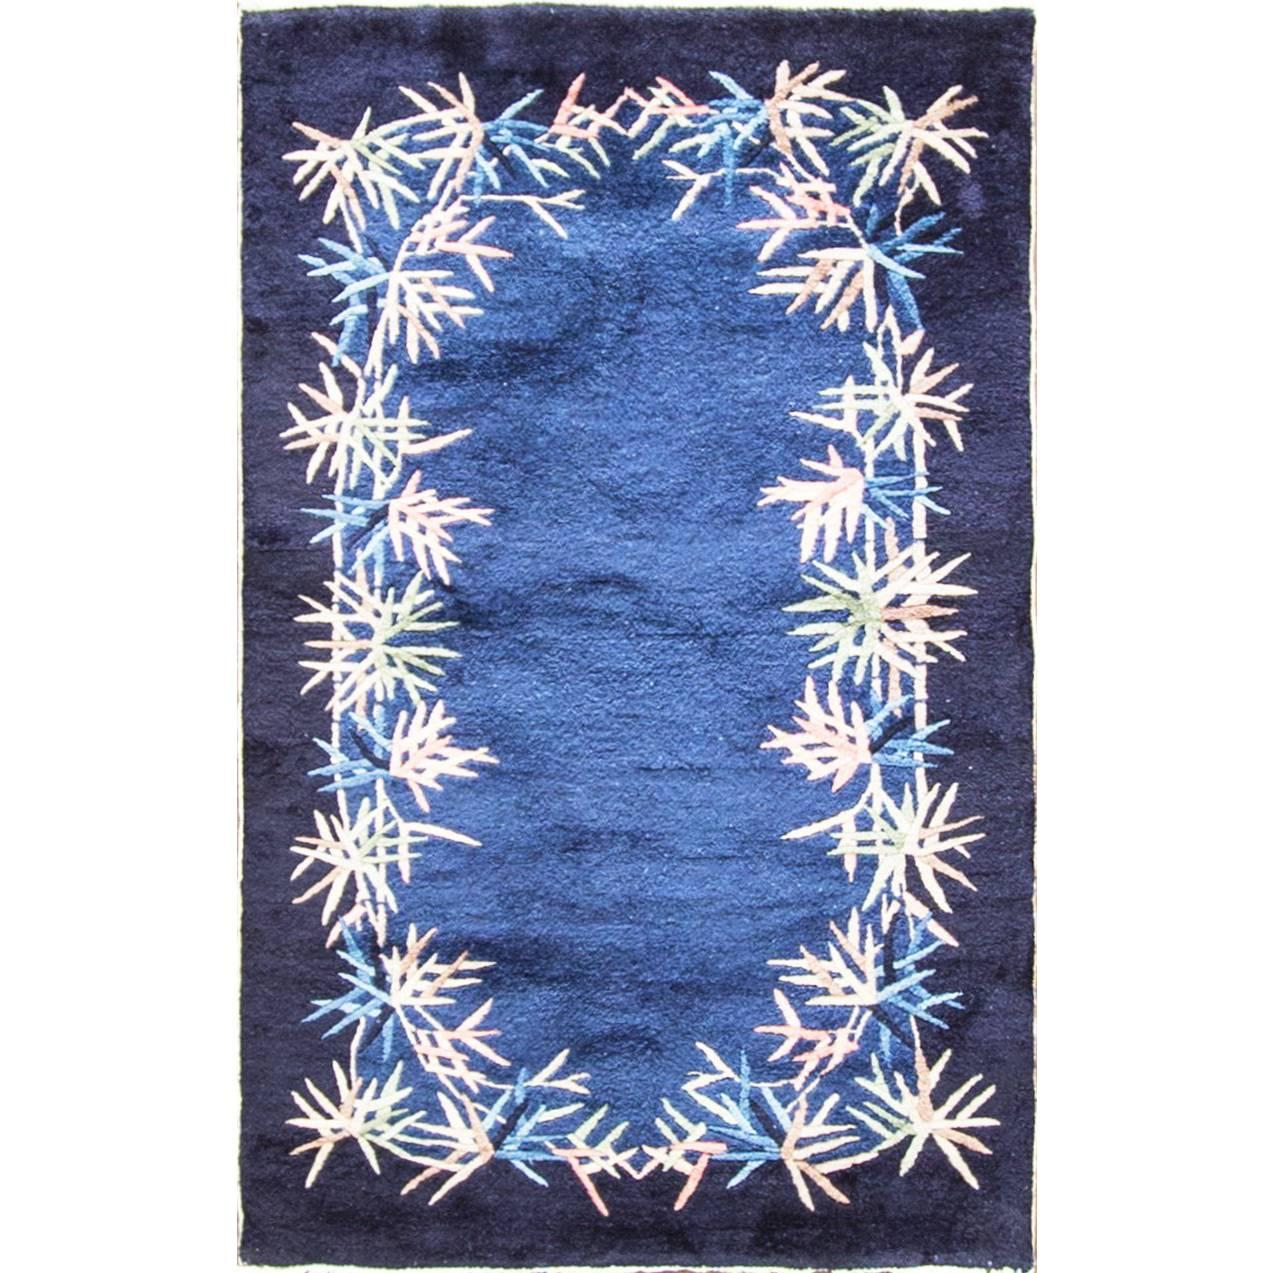 antique images snowflake vintage best on rug pinterest rugs tmuglich hooked hooking inspiration